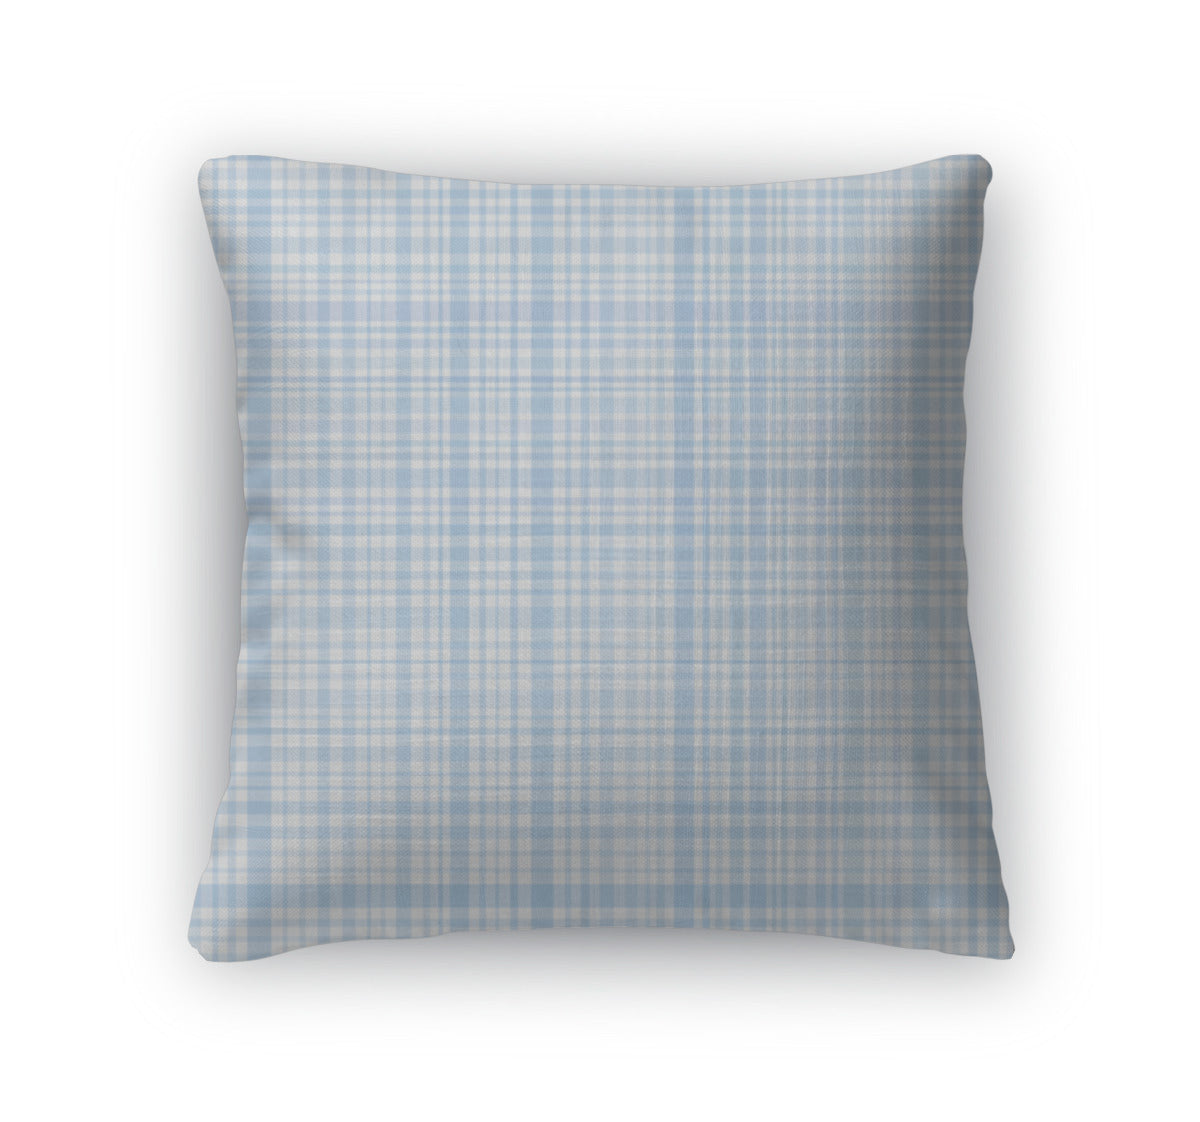 Throw Pillow, Pastel Blue Plaid